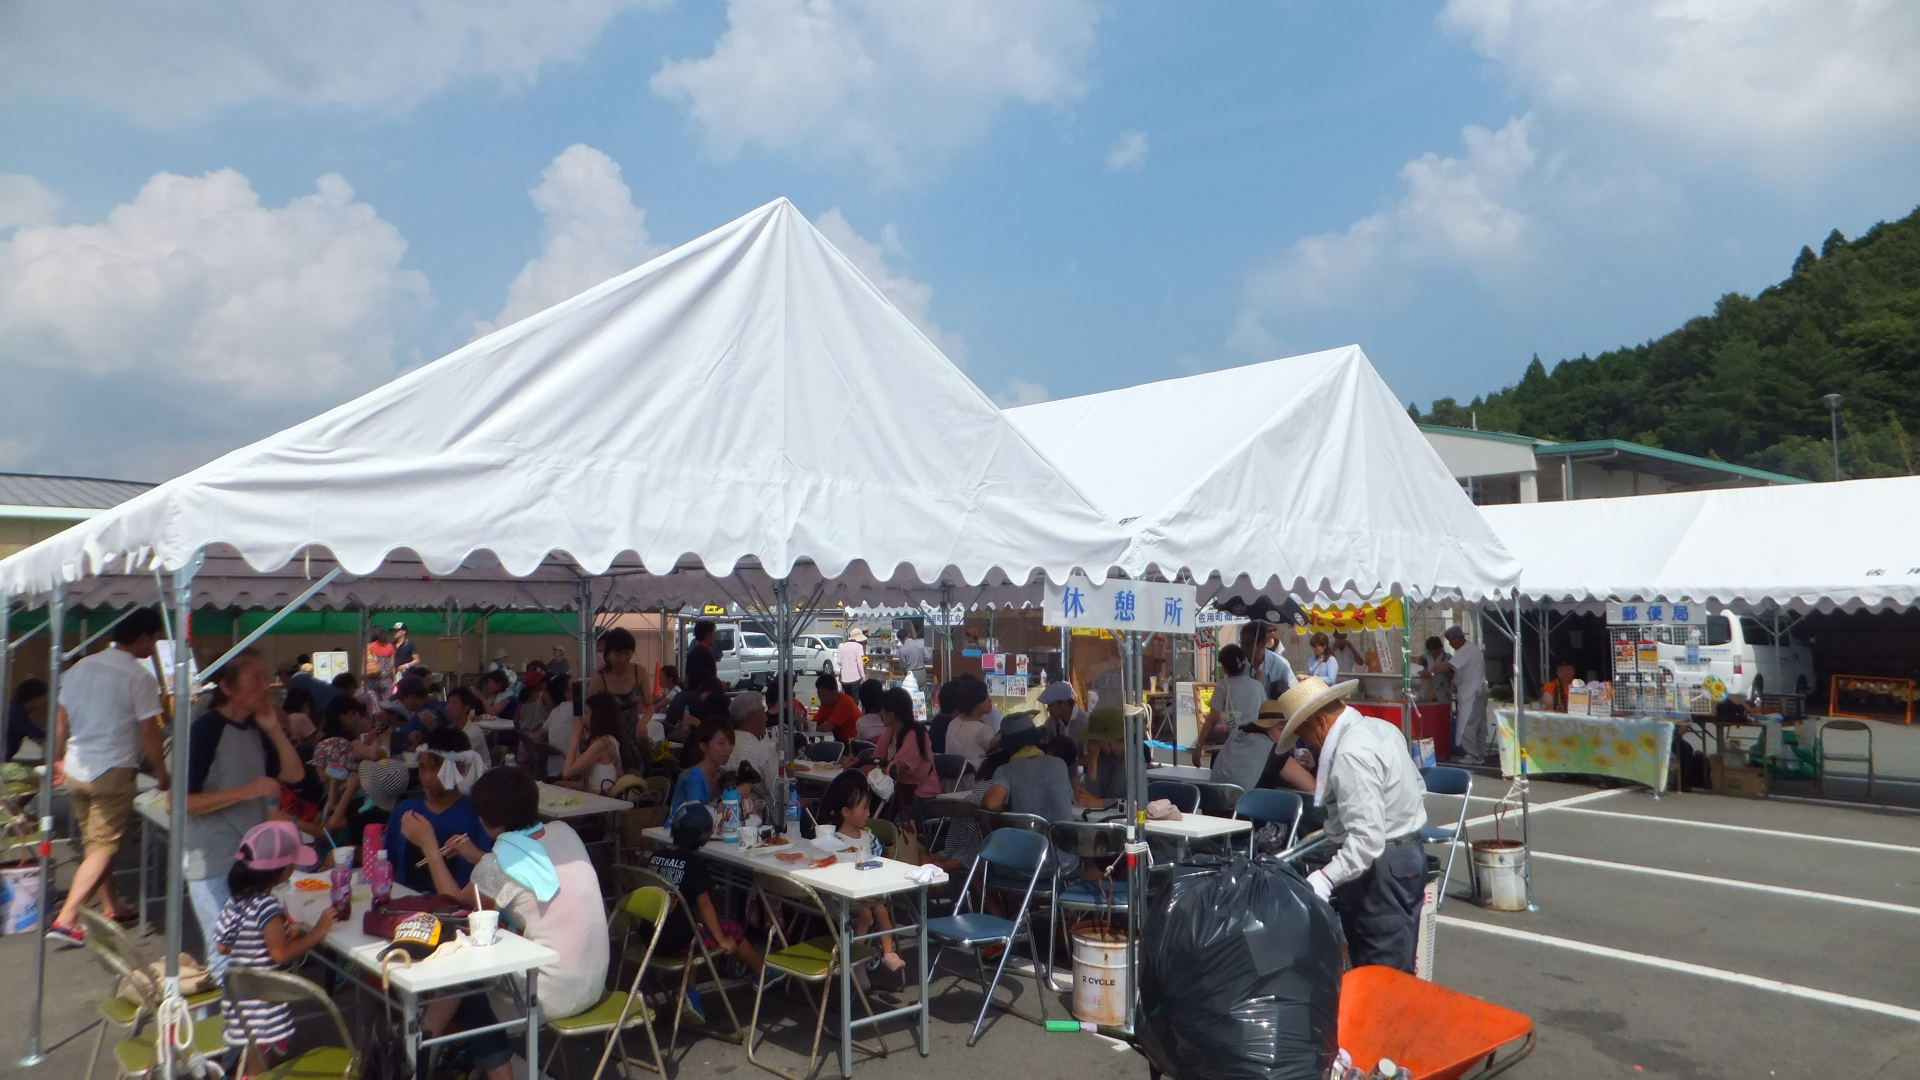 FileSayo-town Nanko Sunflower Festival Bussan tent village in 2014-7- & File:Sayo-town Nanko Sunflower Festival Bussan tent village in ...